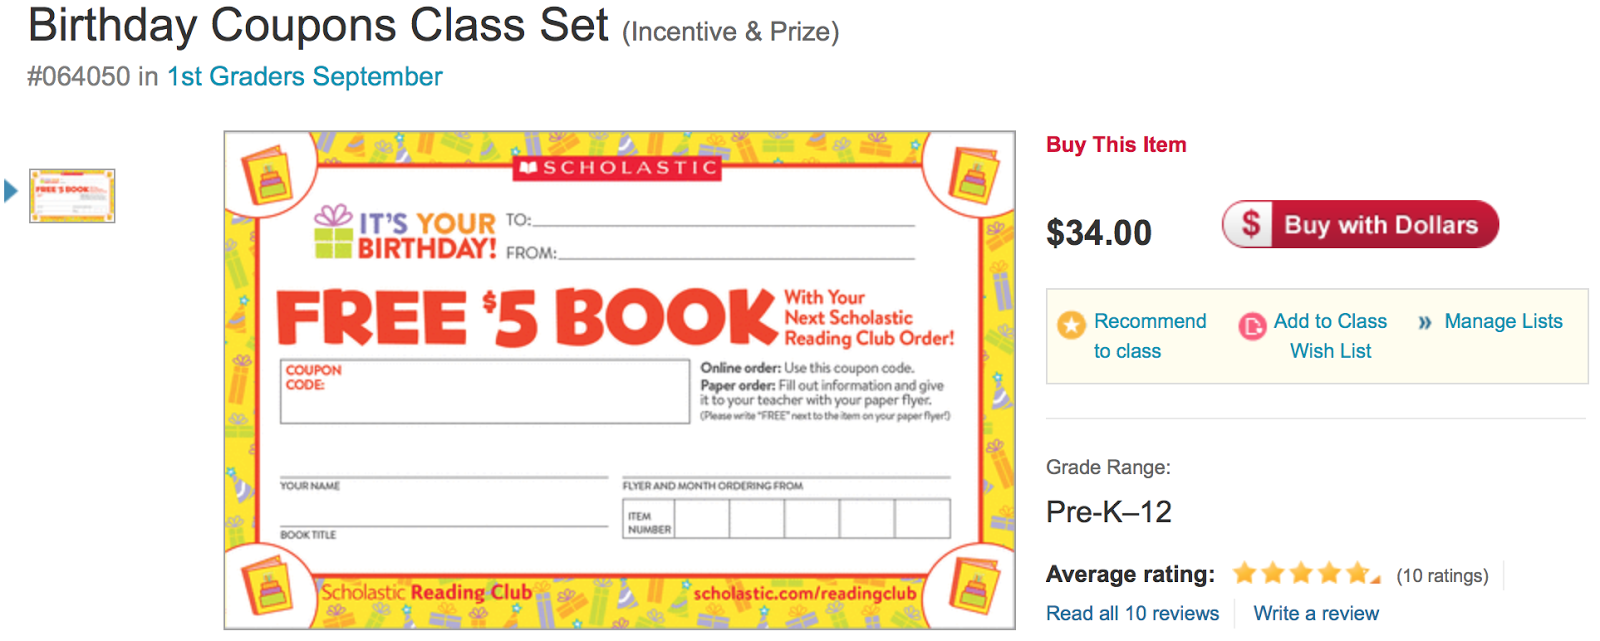 Scholastic reading club coupon code for parents 2018